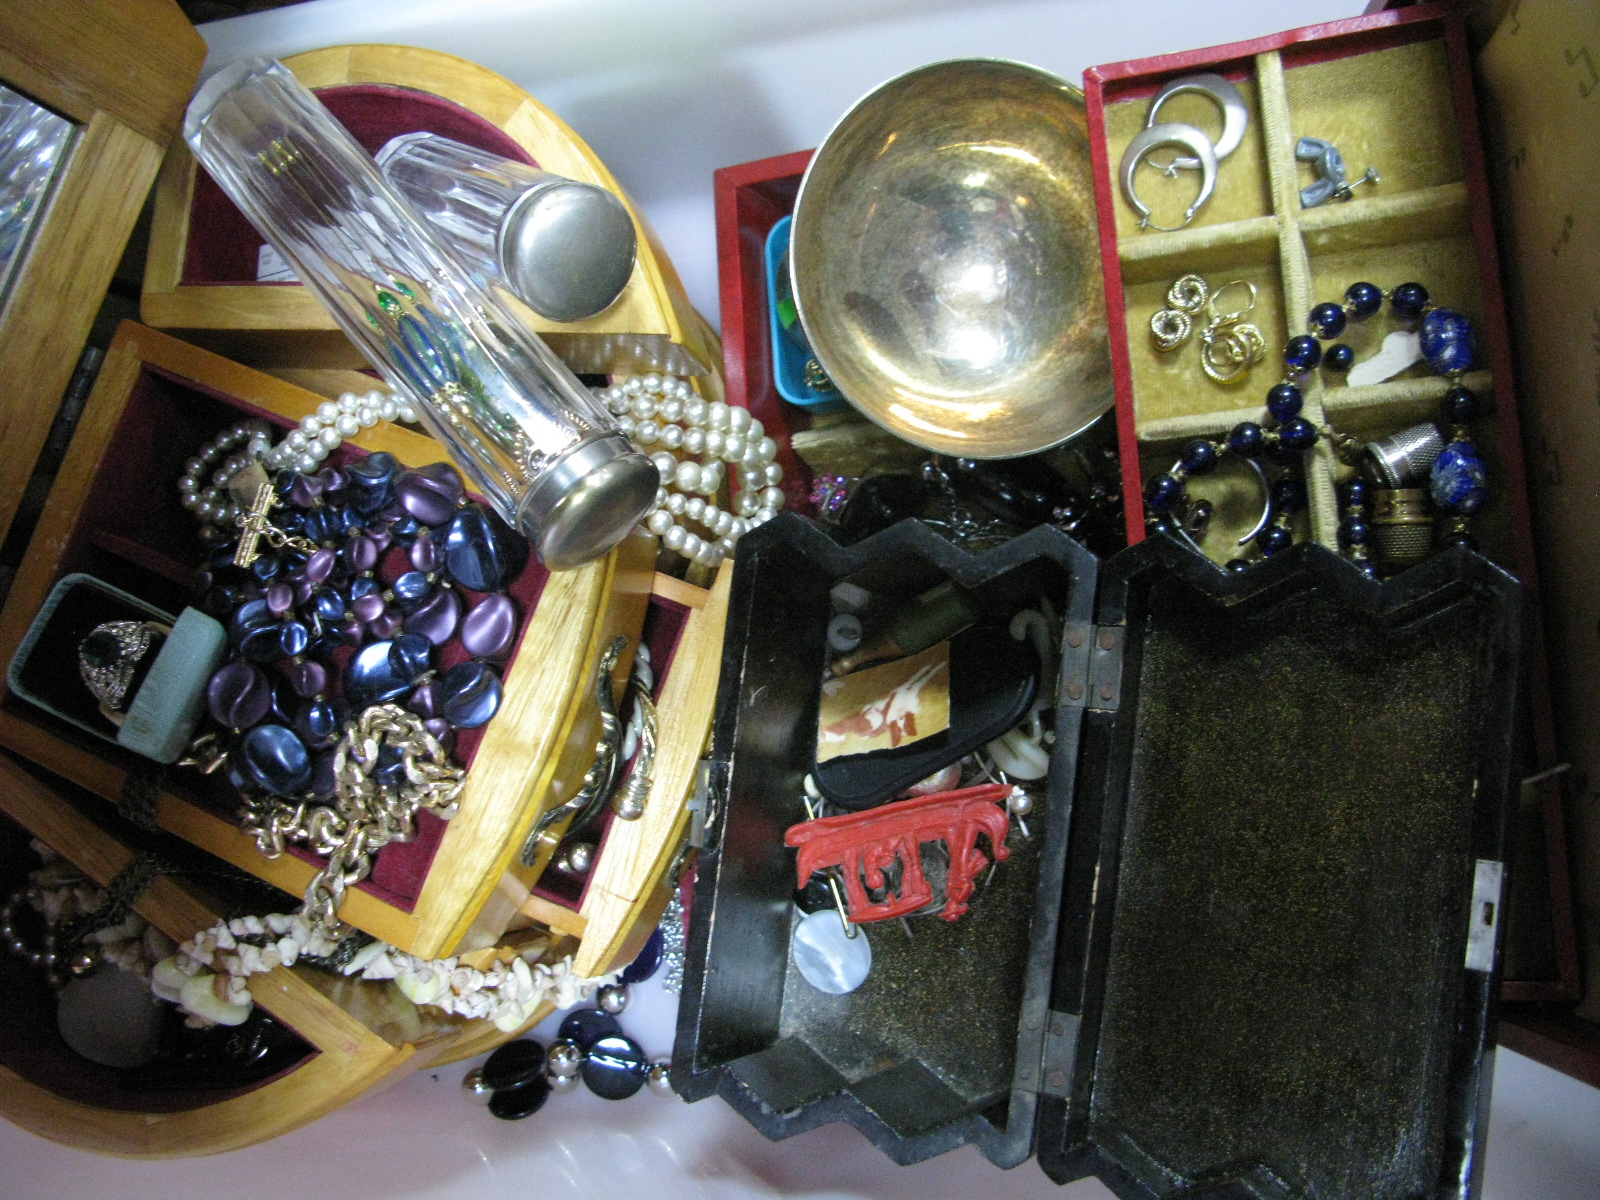 Lot 1024 - A Mixed Lot of Assorted Costume Jewellery, including imitation pearls, hat pins, two hat pin jars,